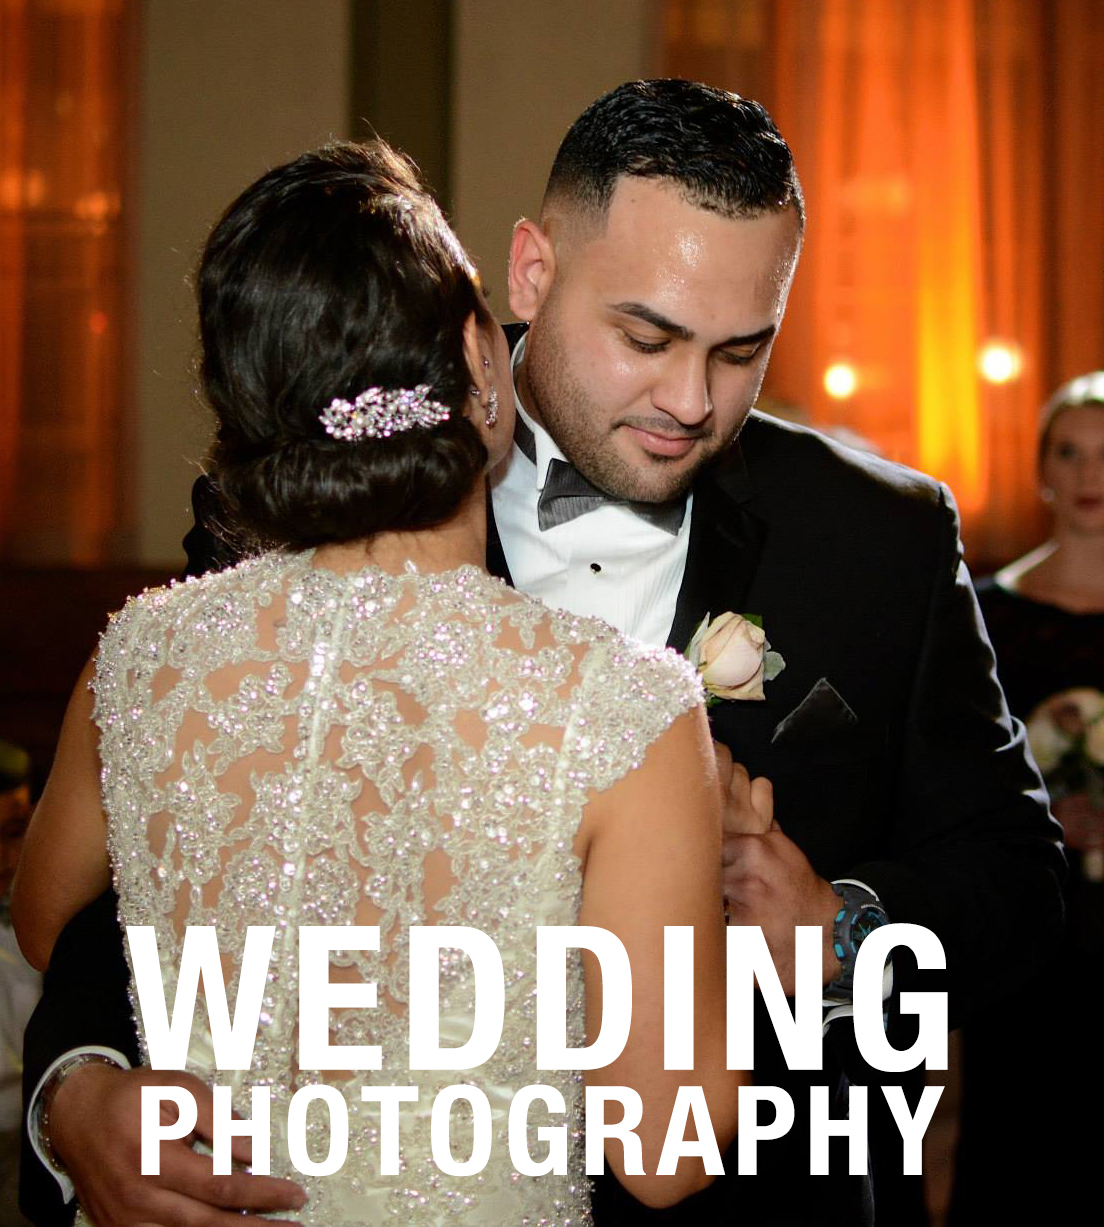 WEDDING PHOTOGRAPHY 1.jpg